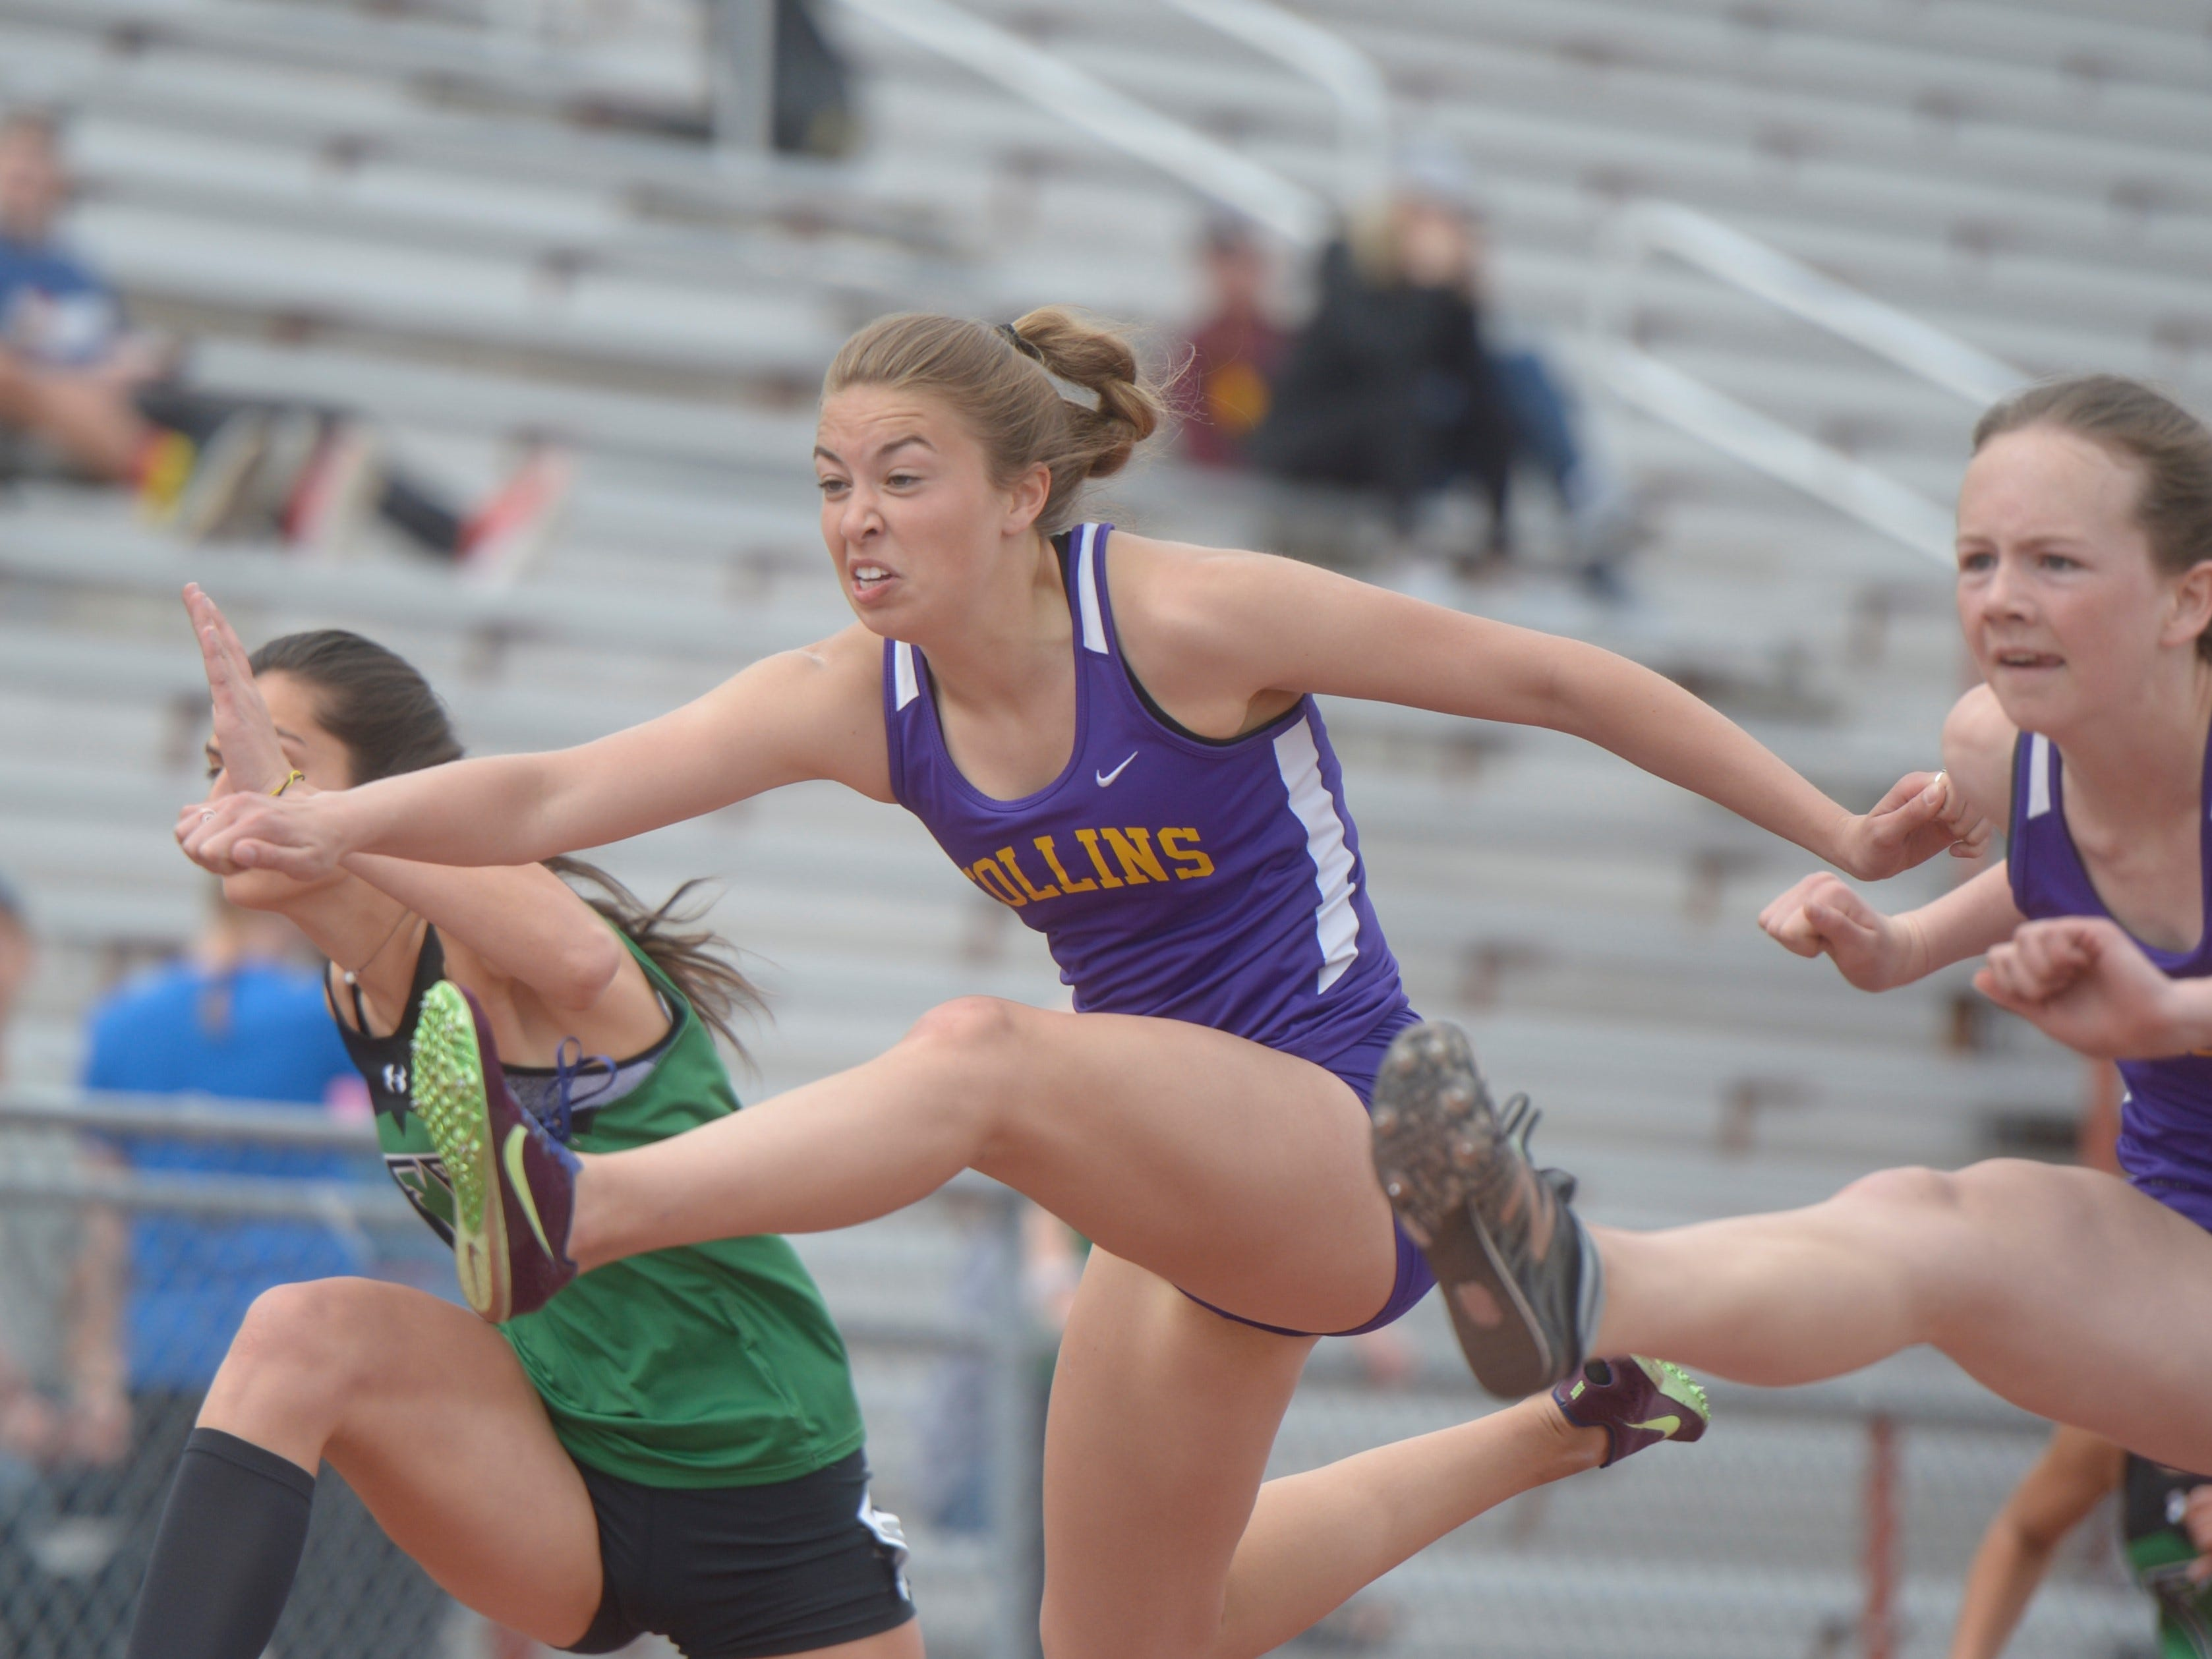 Fort Collins High School's Samnatha Gordon, middle, runs the 100 hurdles at the city meet at French Field on Tuesday, April 9, 2019.